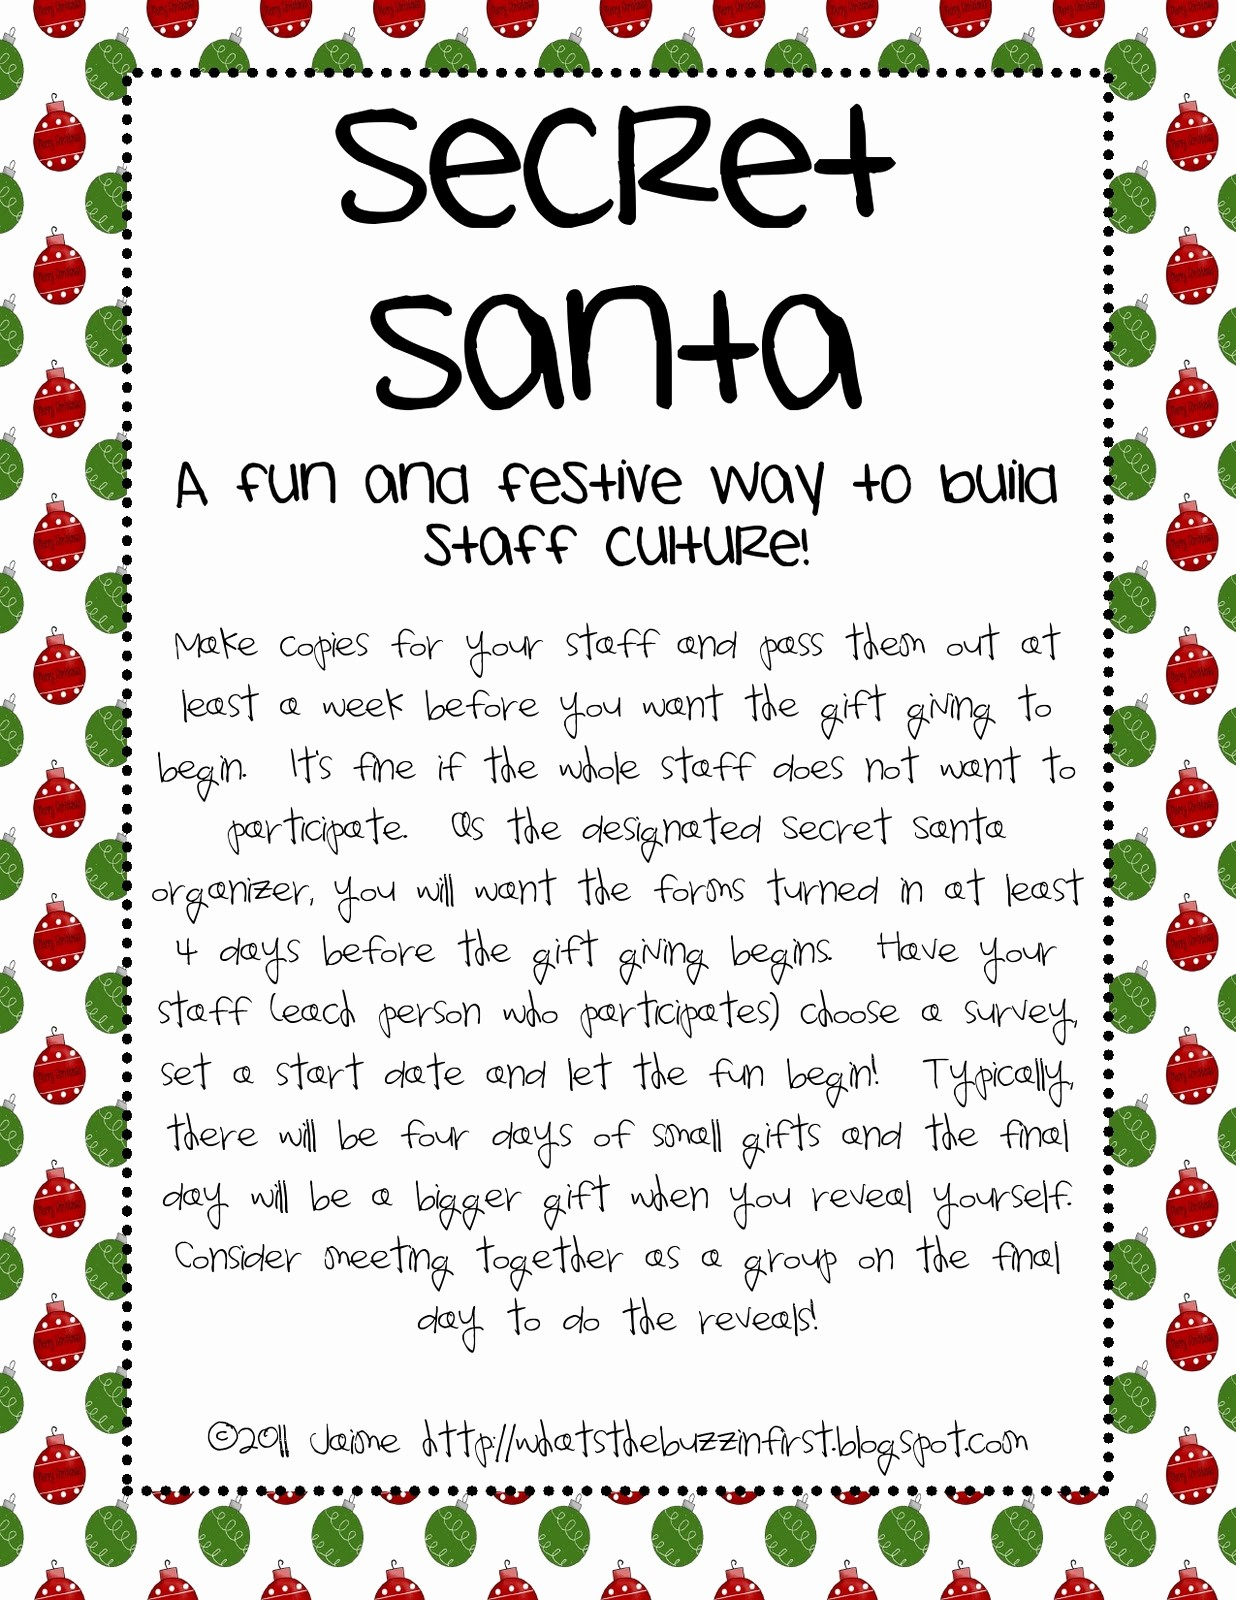 Secret Santa Sign Up List Inspirational What S the Buzz In First